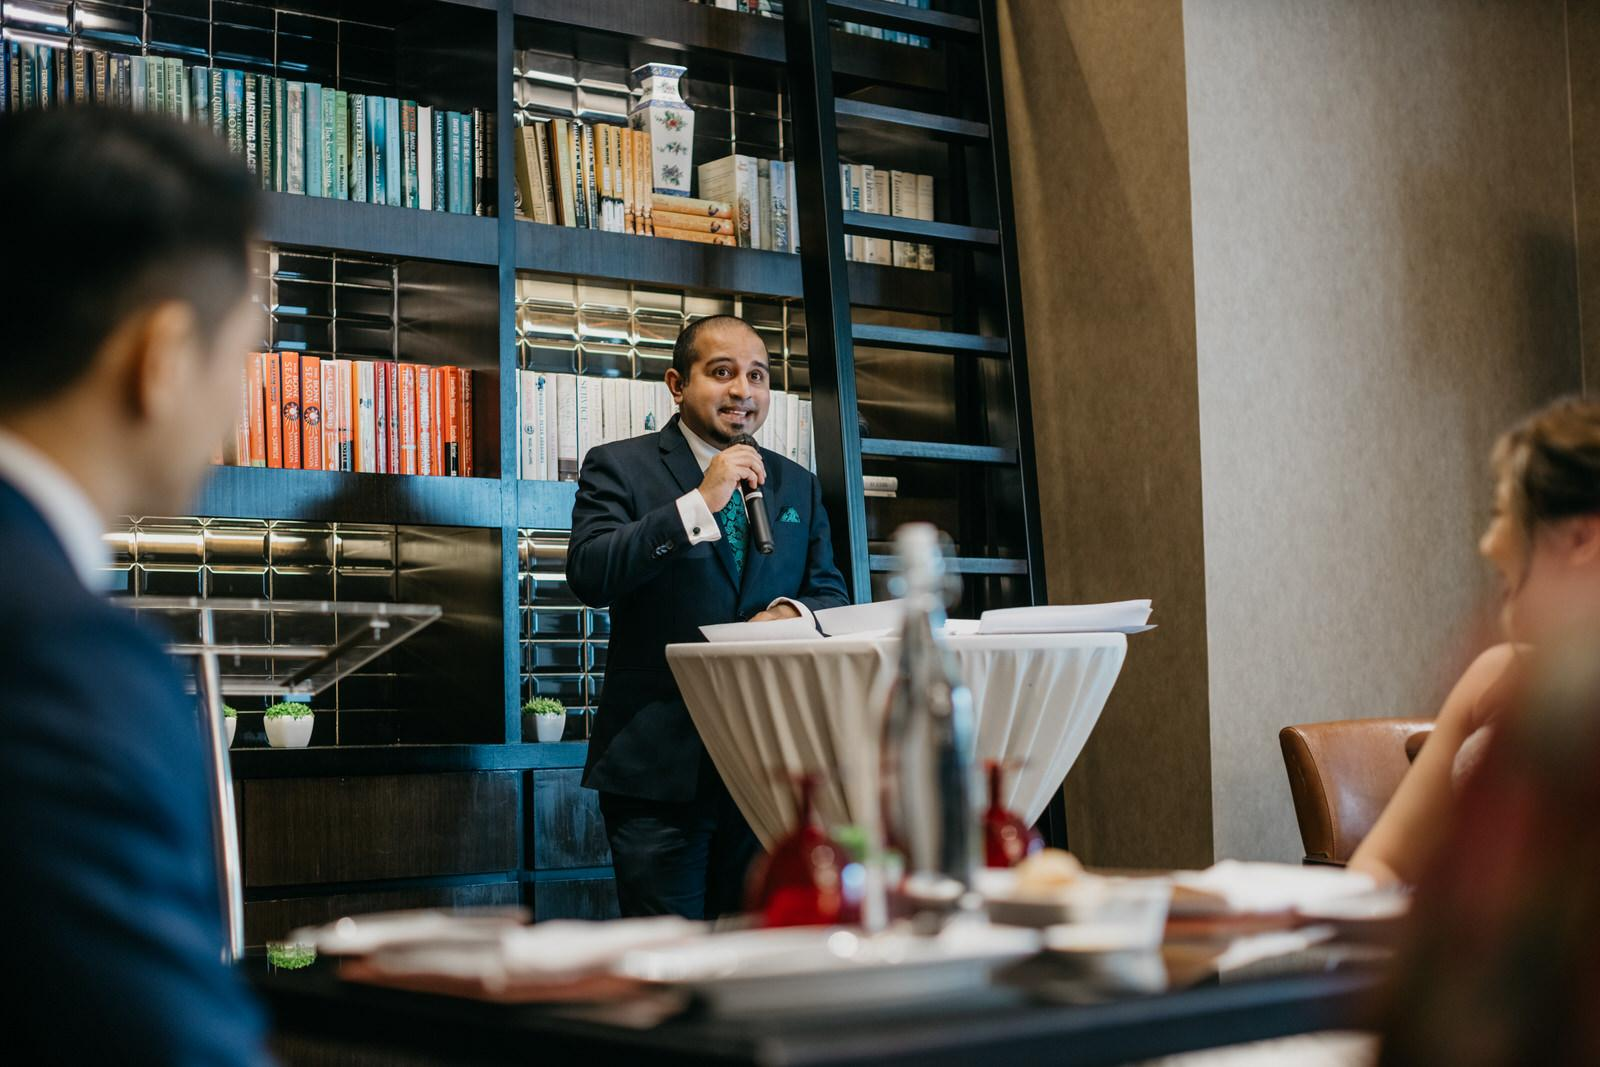 Brasserie 25 French Cuisine Wedding reception at Hotel Stripes Kuala Lumpur MCO2.0 SOP Cliff Choong Photography Malaysia Covid19 ROM